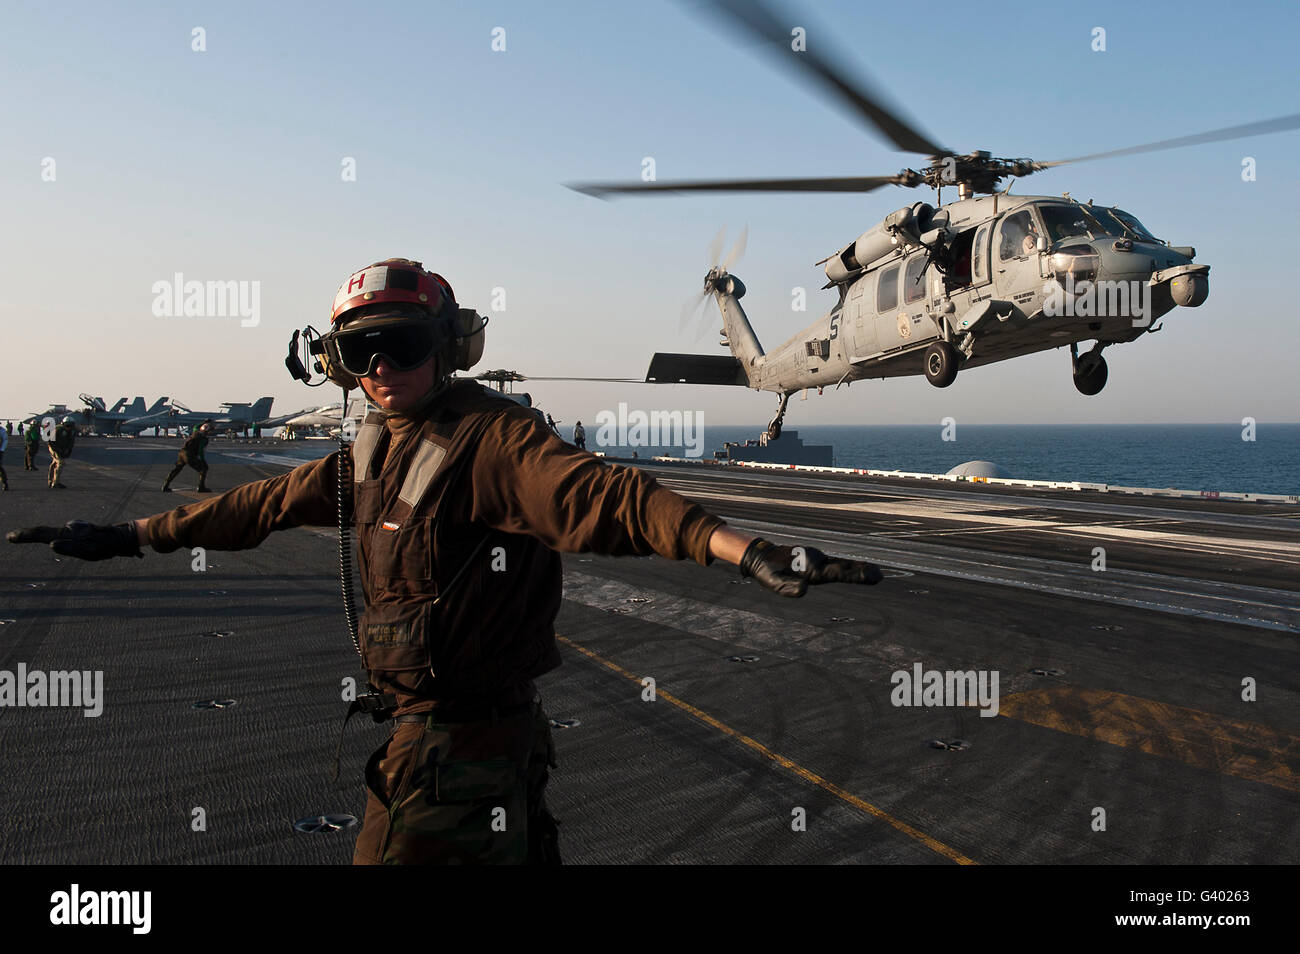 Airman checks for a clear deck as an MH-60S Sea Hawk takes off USS John C. Stennis. - Stock Image